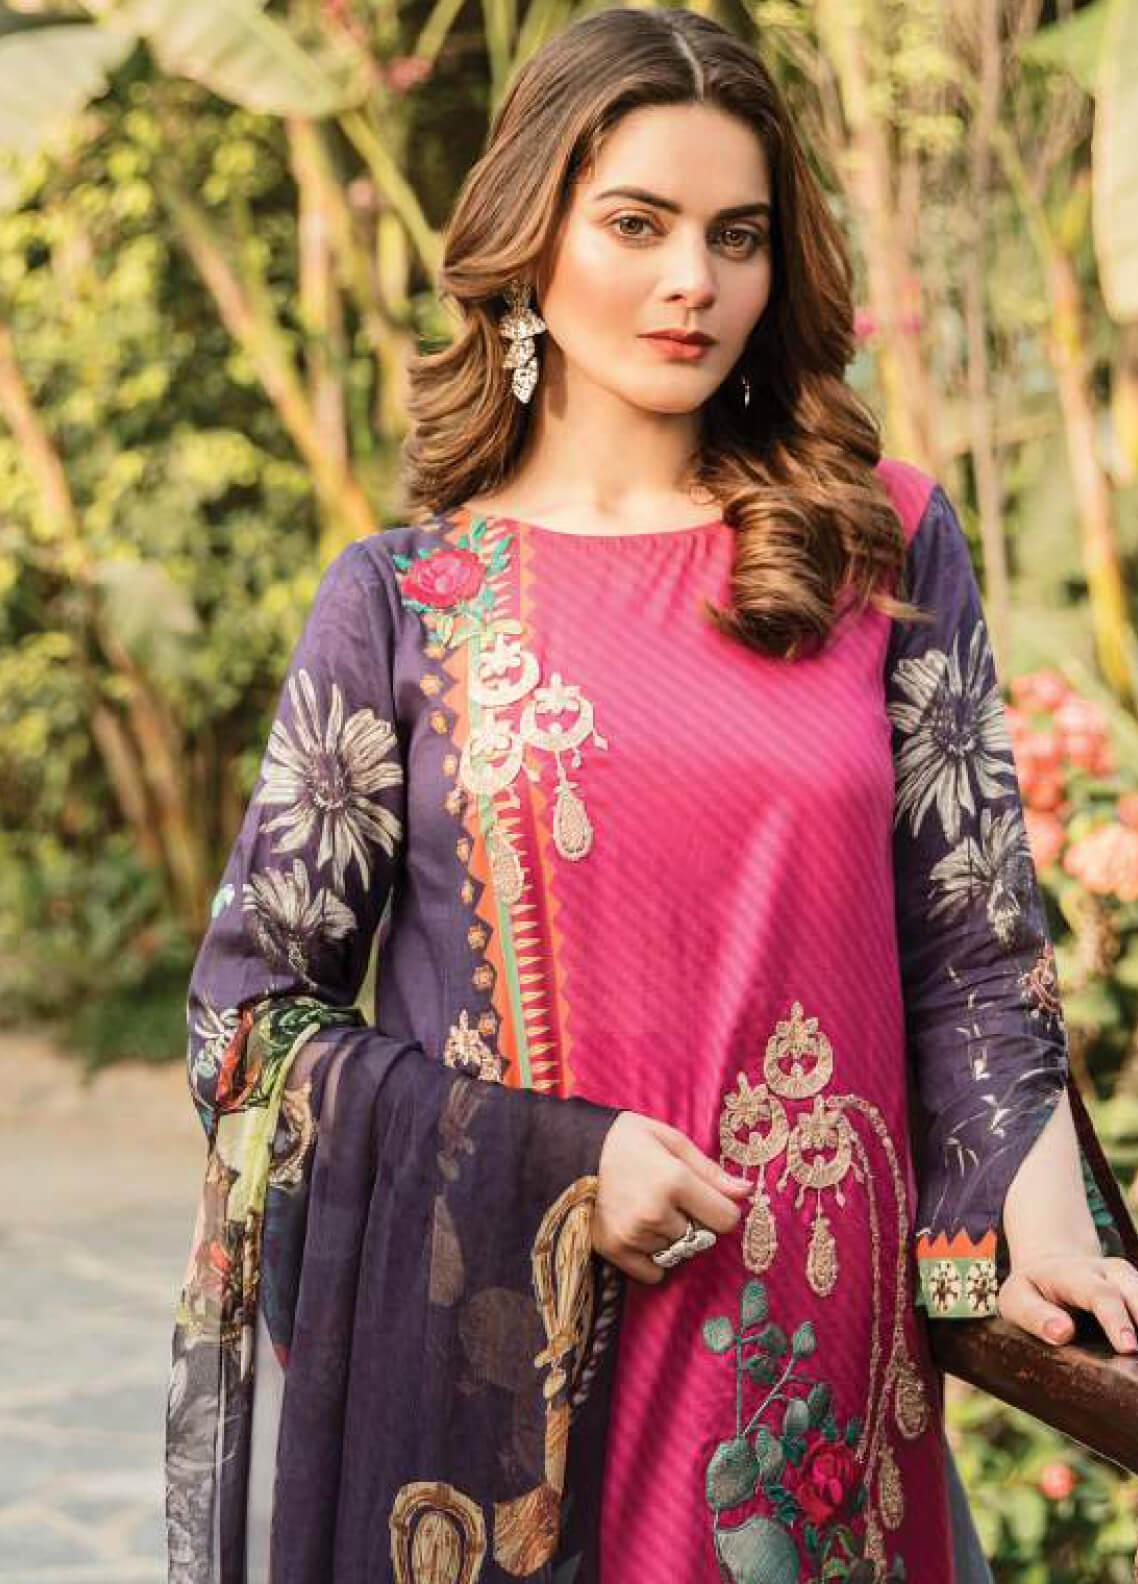 Serene Premium Embroidered Lawn Unstitched 3 Piece Suit SPM19L 03 RUBY ROYALE - Spring / Summer Collection